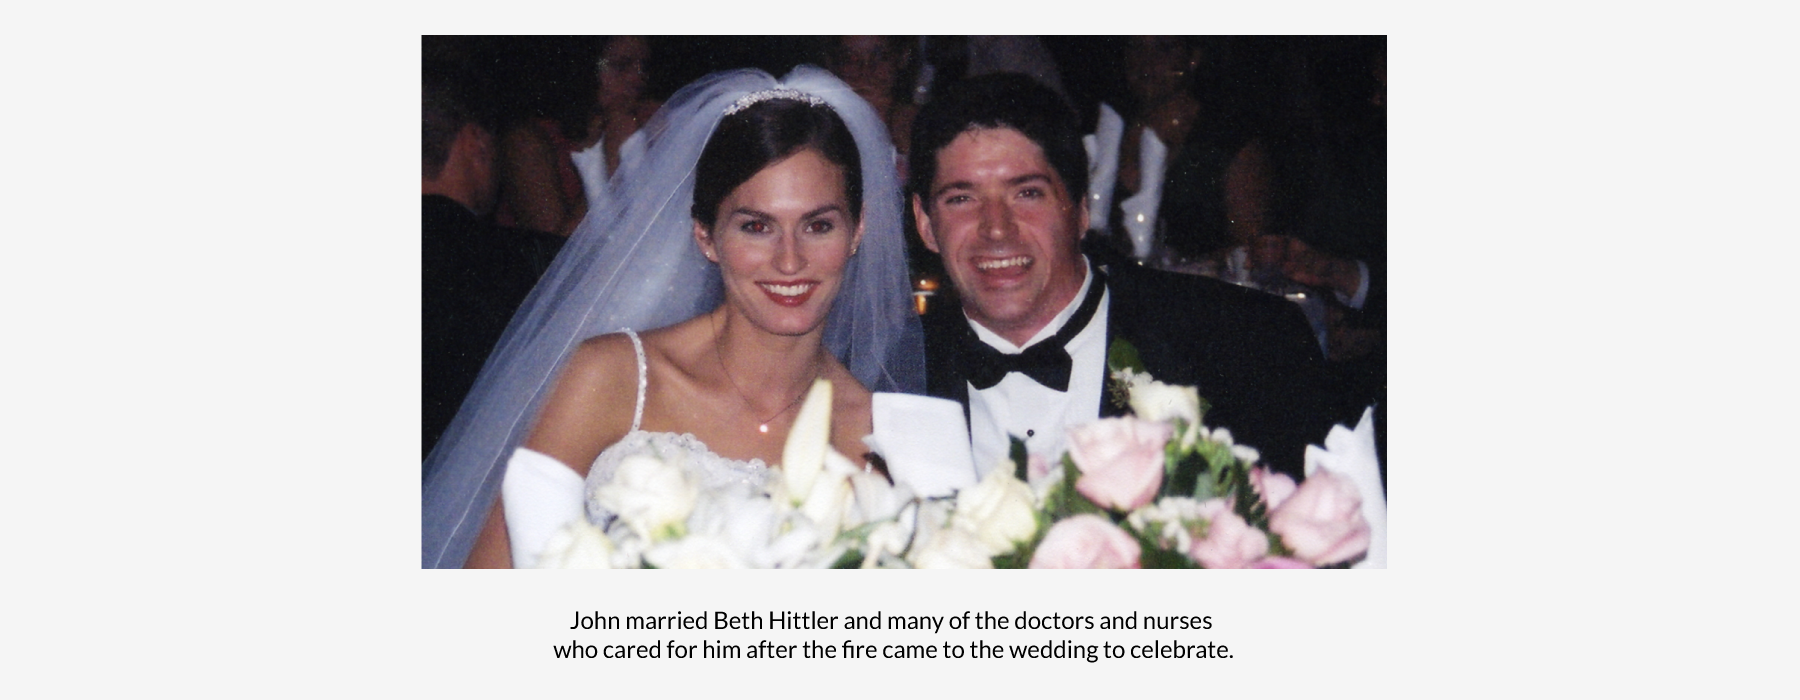 John and Beth on their wedding day